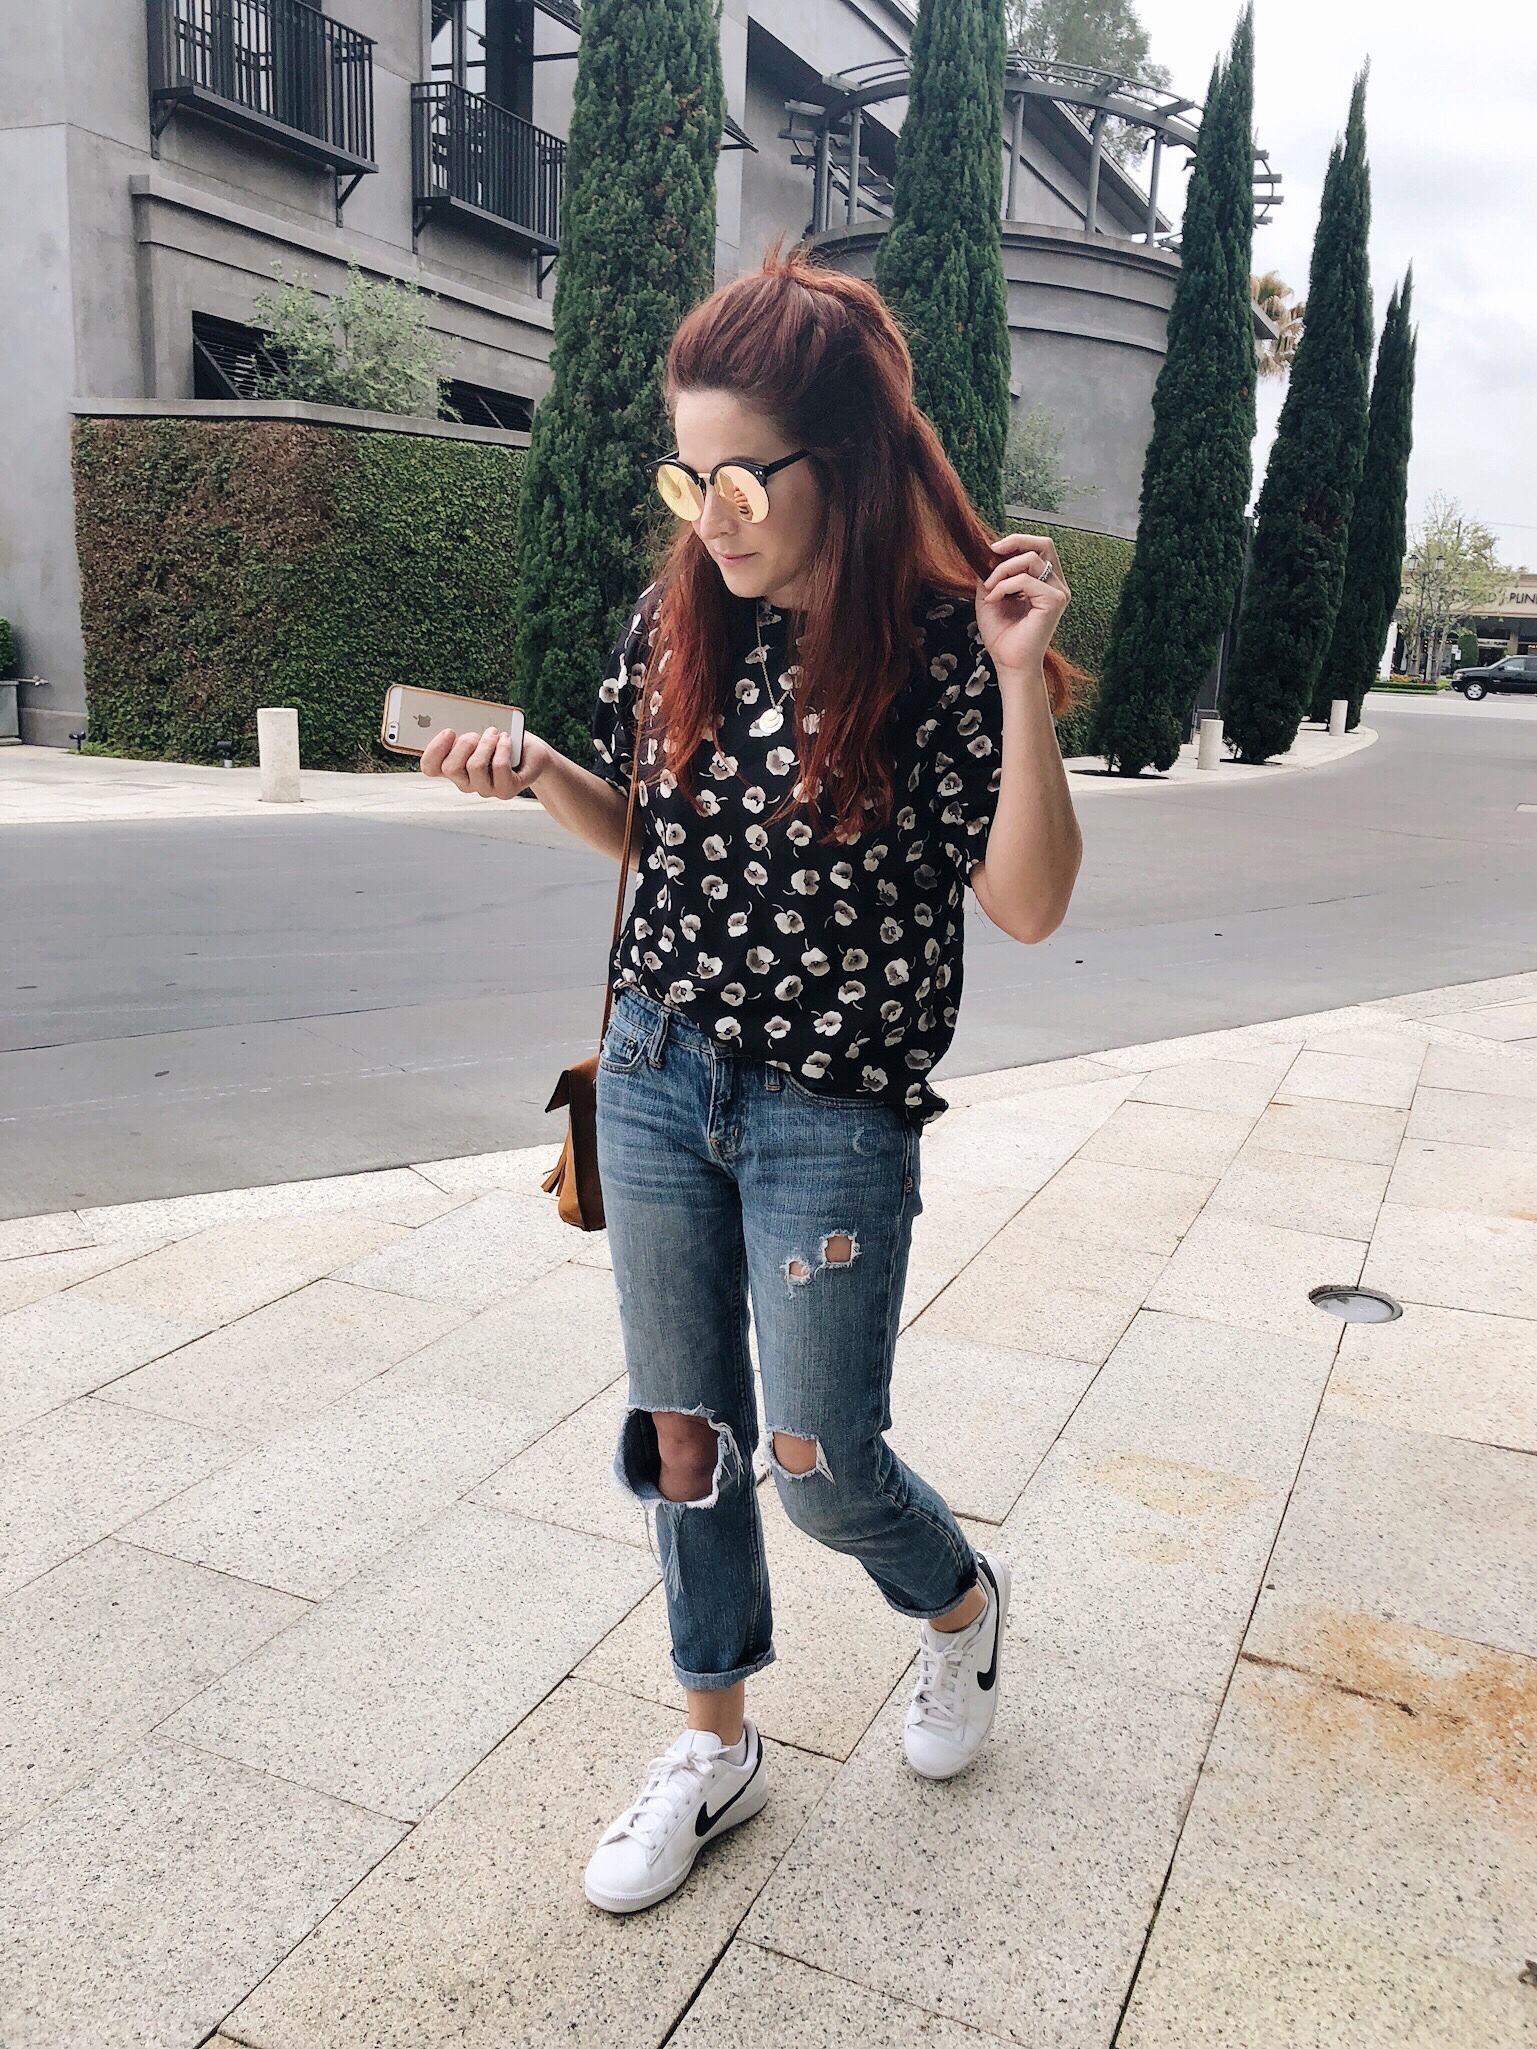 casual photos, casual style, floral top, navy blouse with flowers, nike sneakers, mirror sunglasses